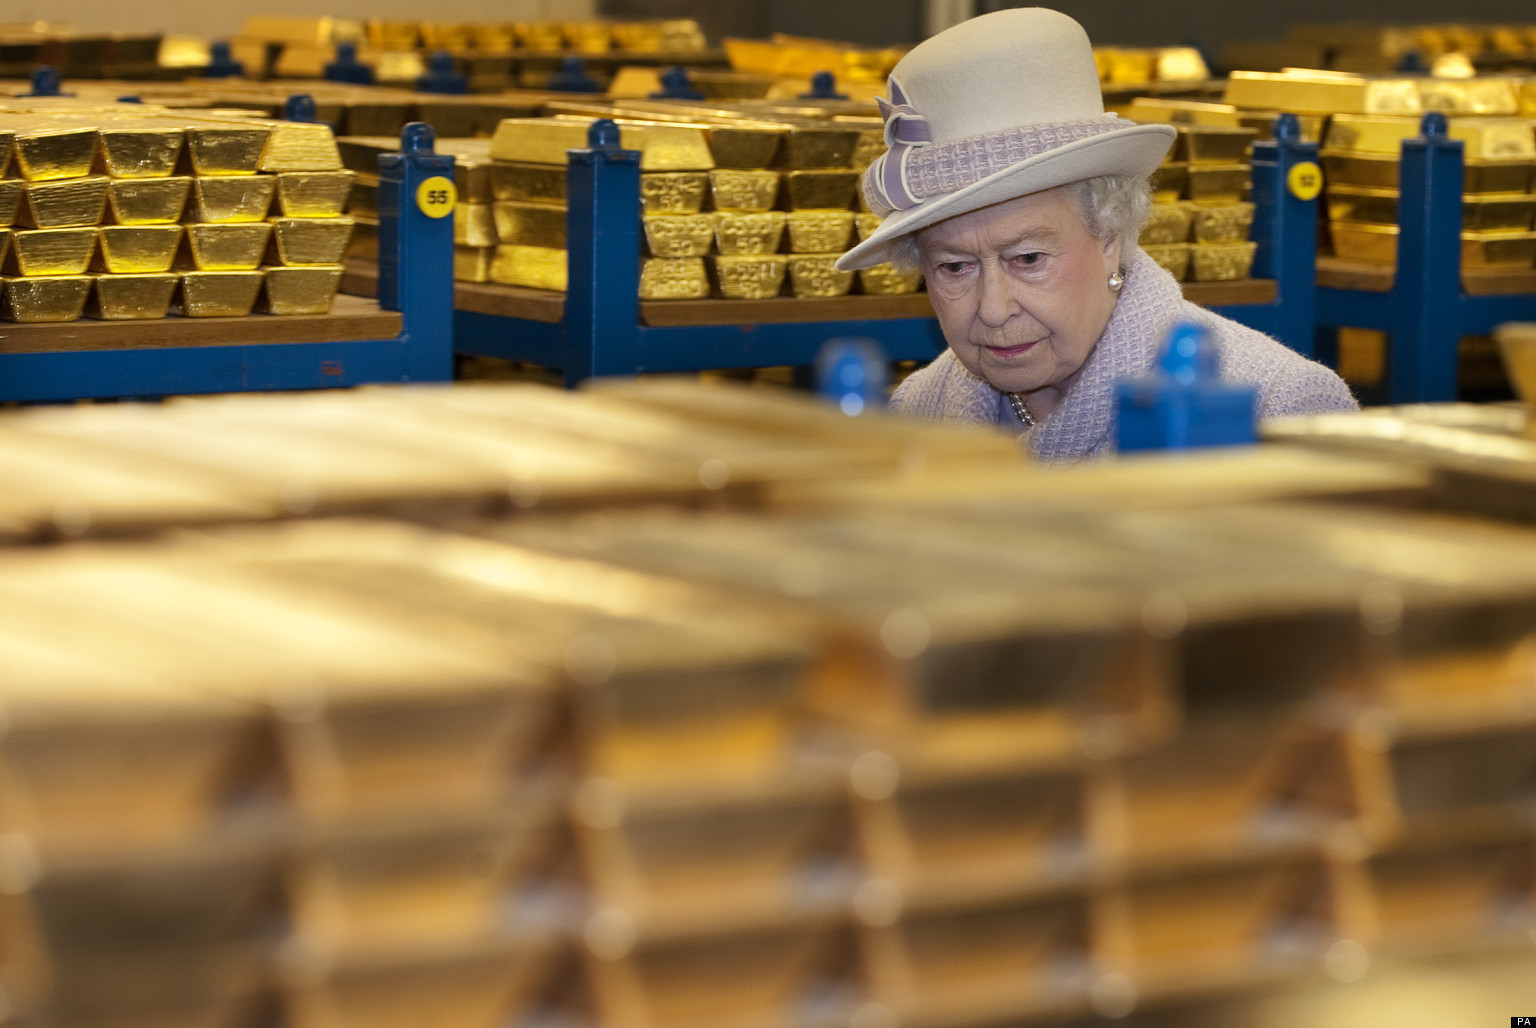 Queen Visits Bank Of England Asks About 2008 Financial